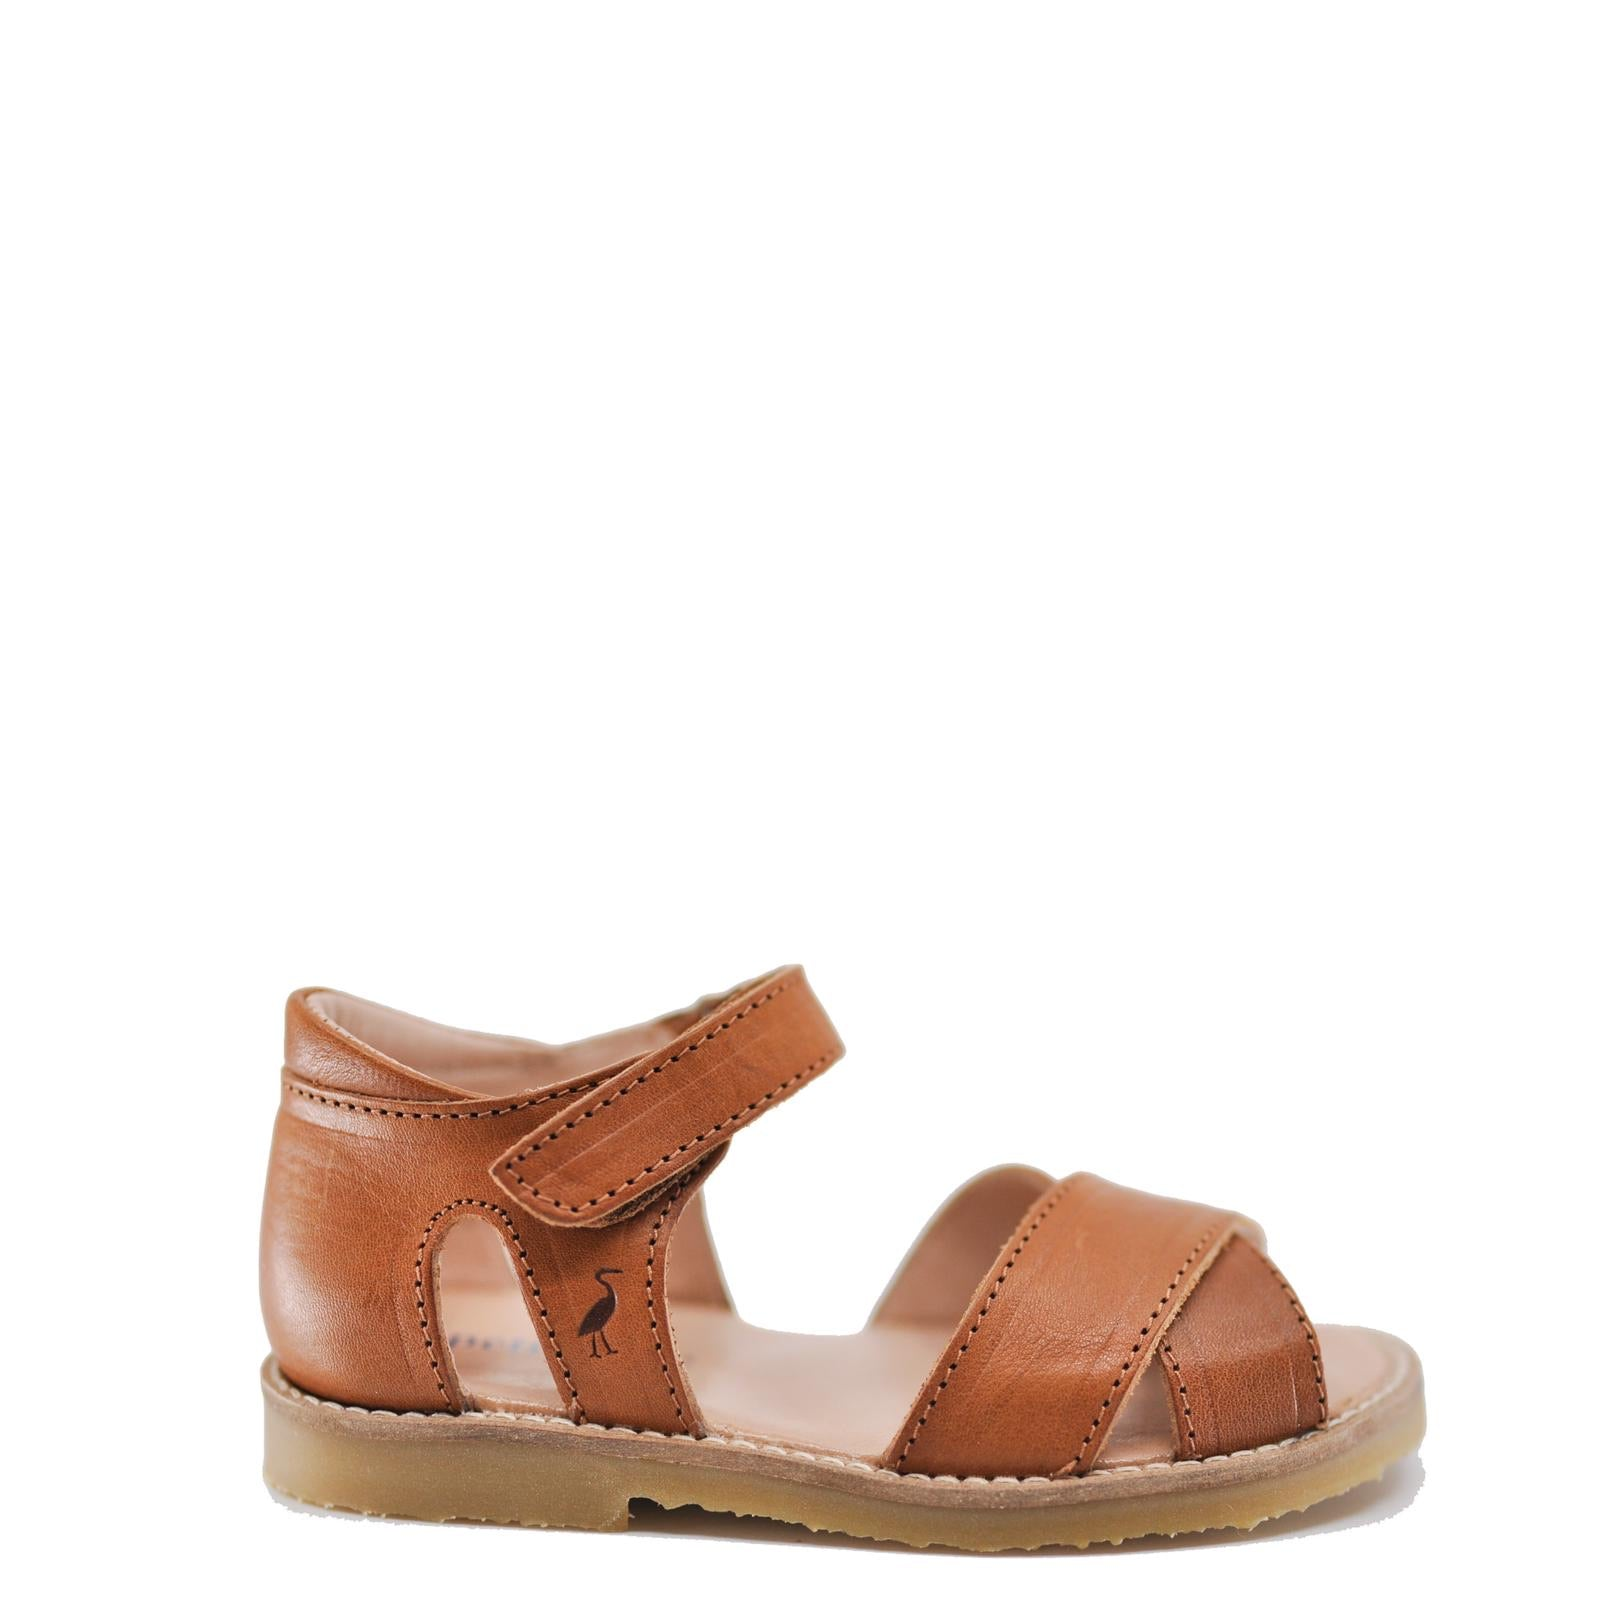 Petit Nord Cognac Criss Cross Sandal-Tassel Children Shoes